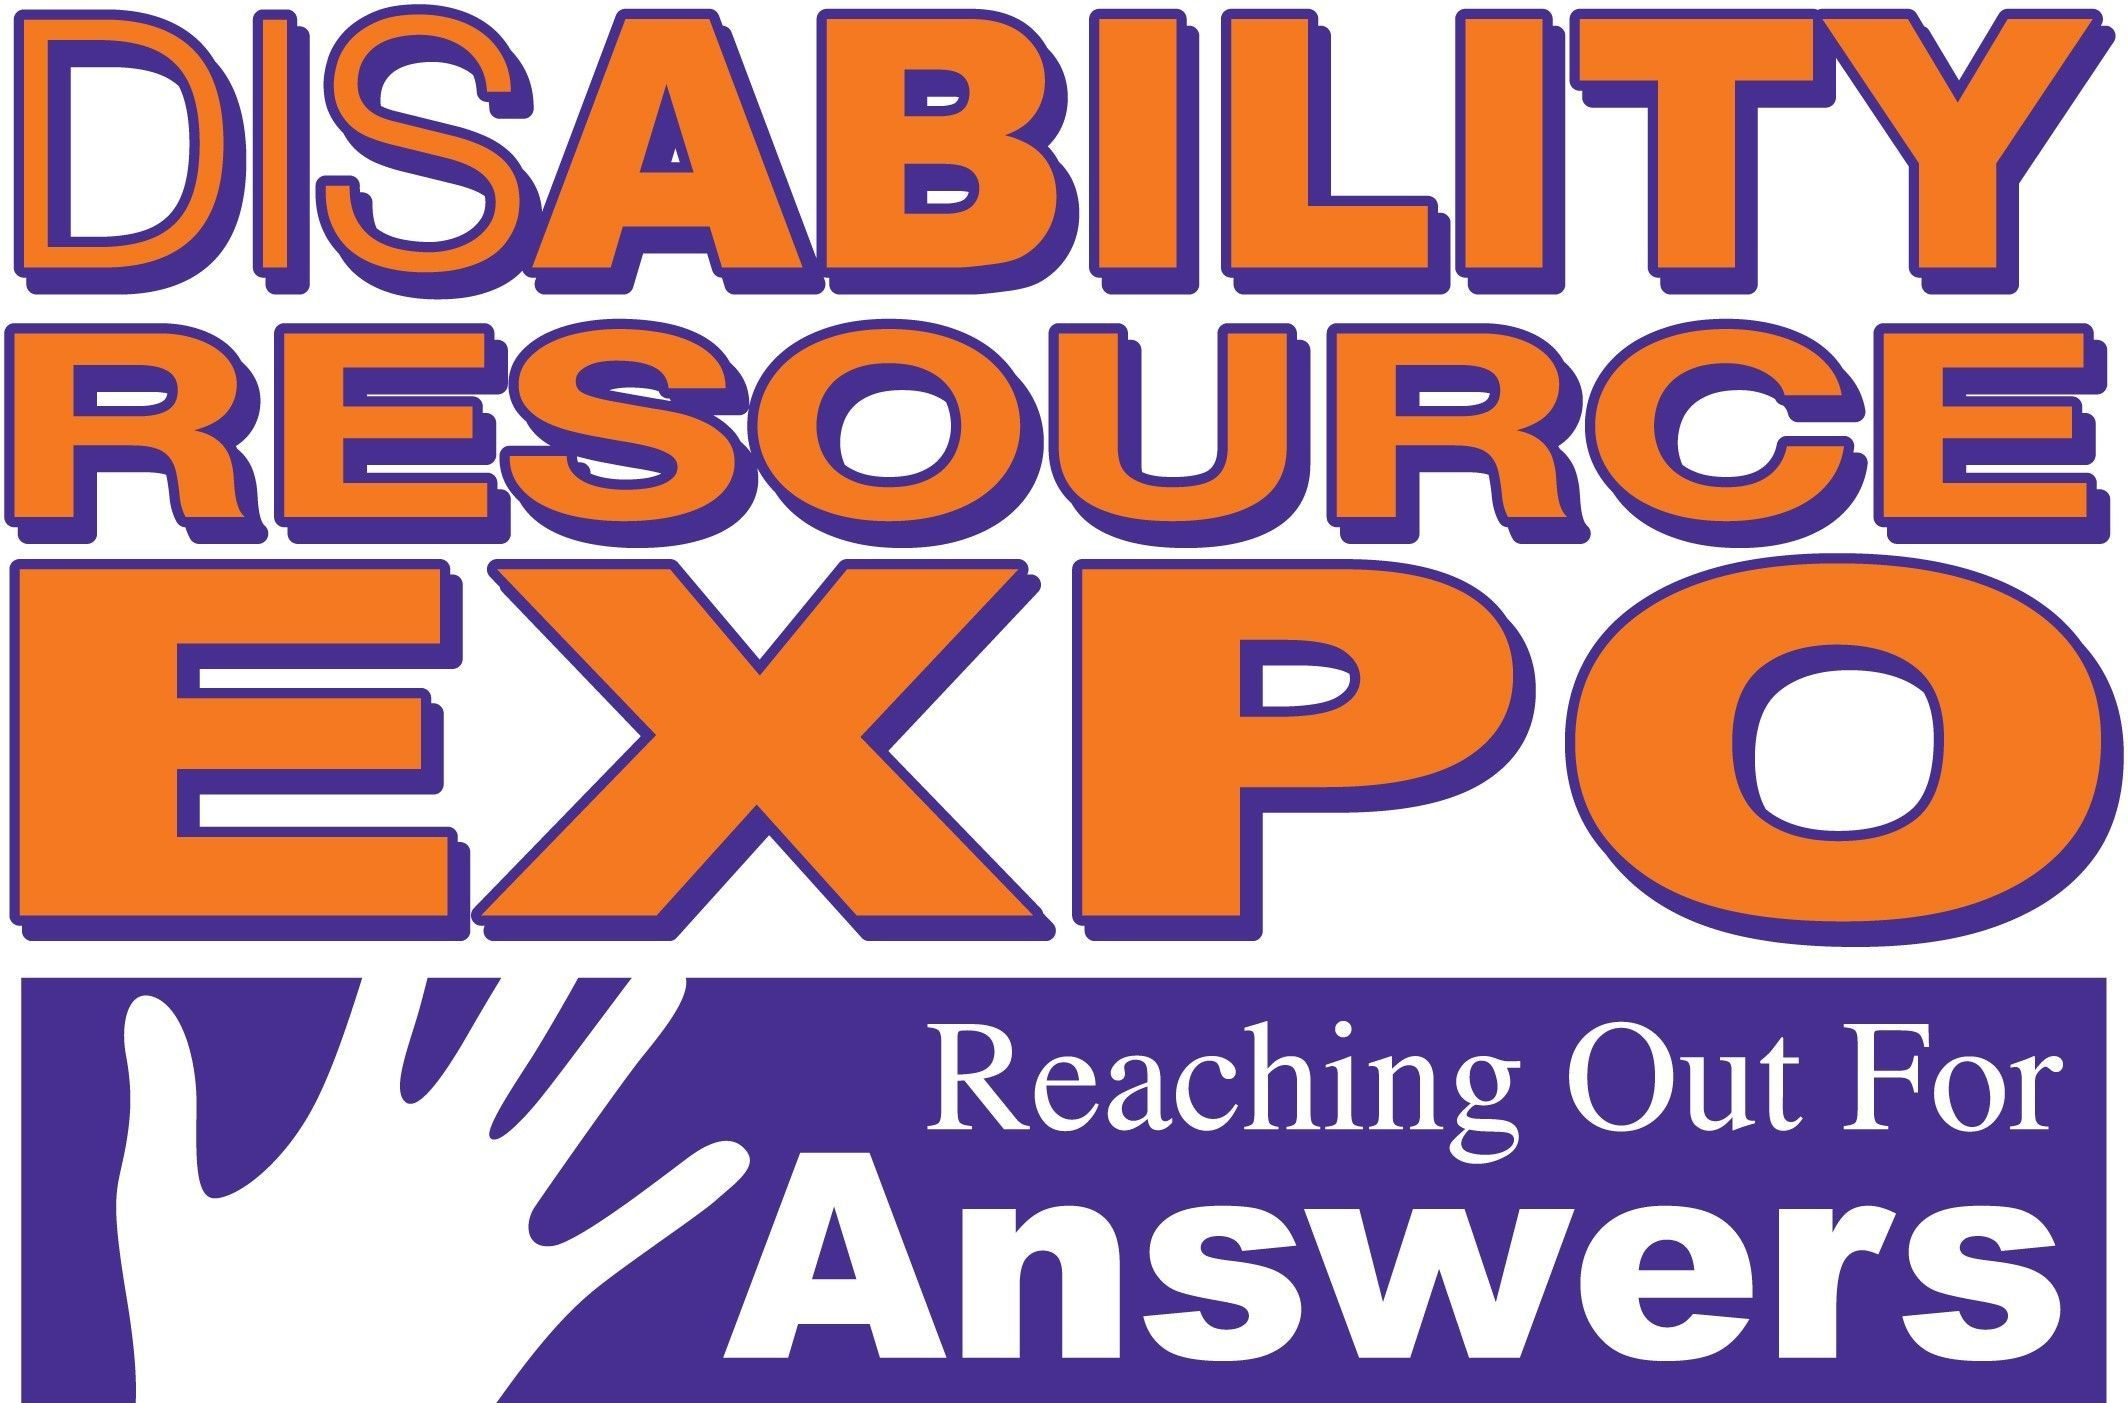 Meet the disABILITY Resource Expo!